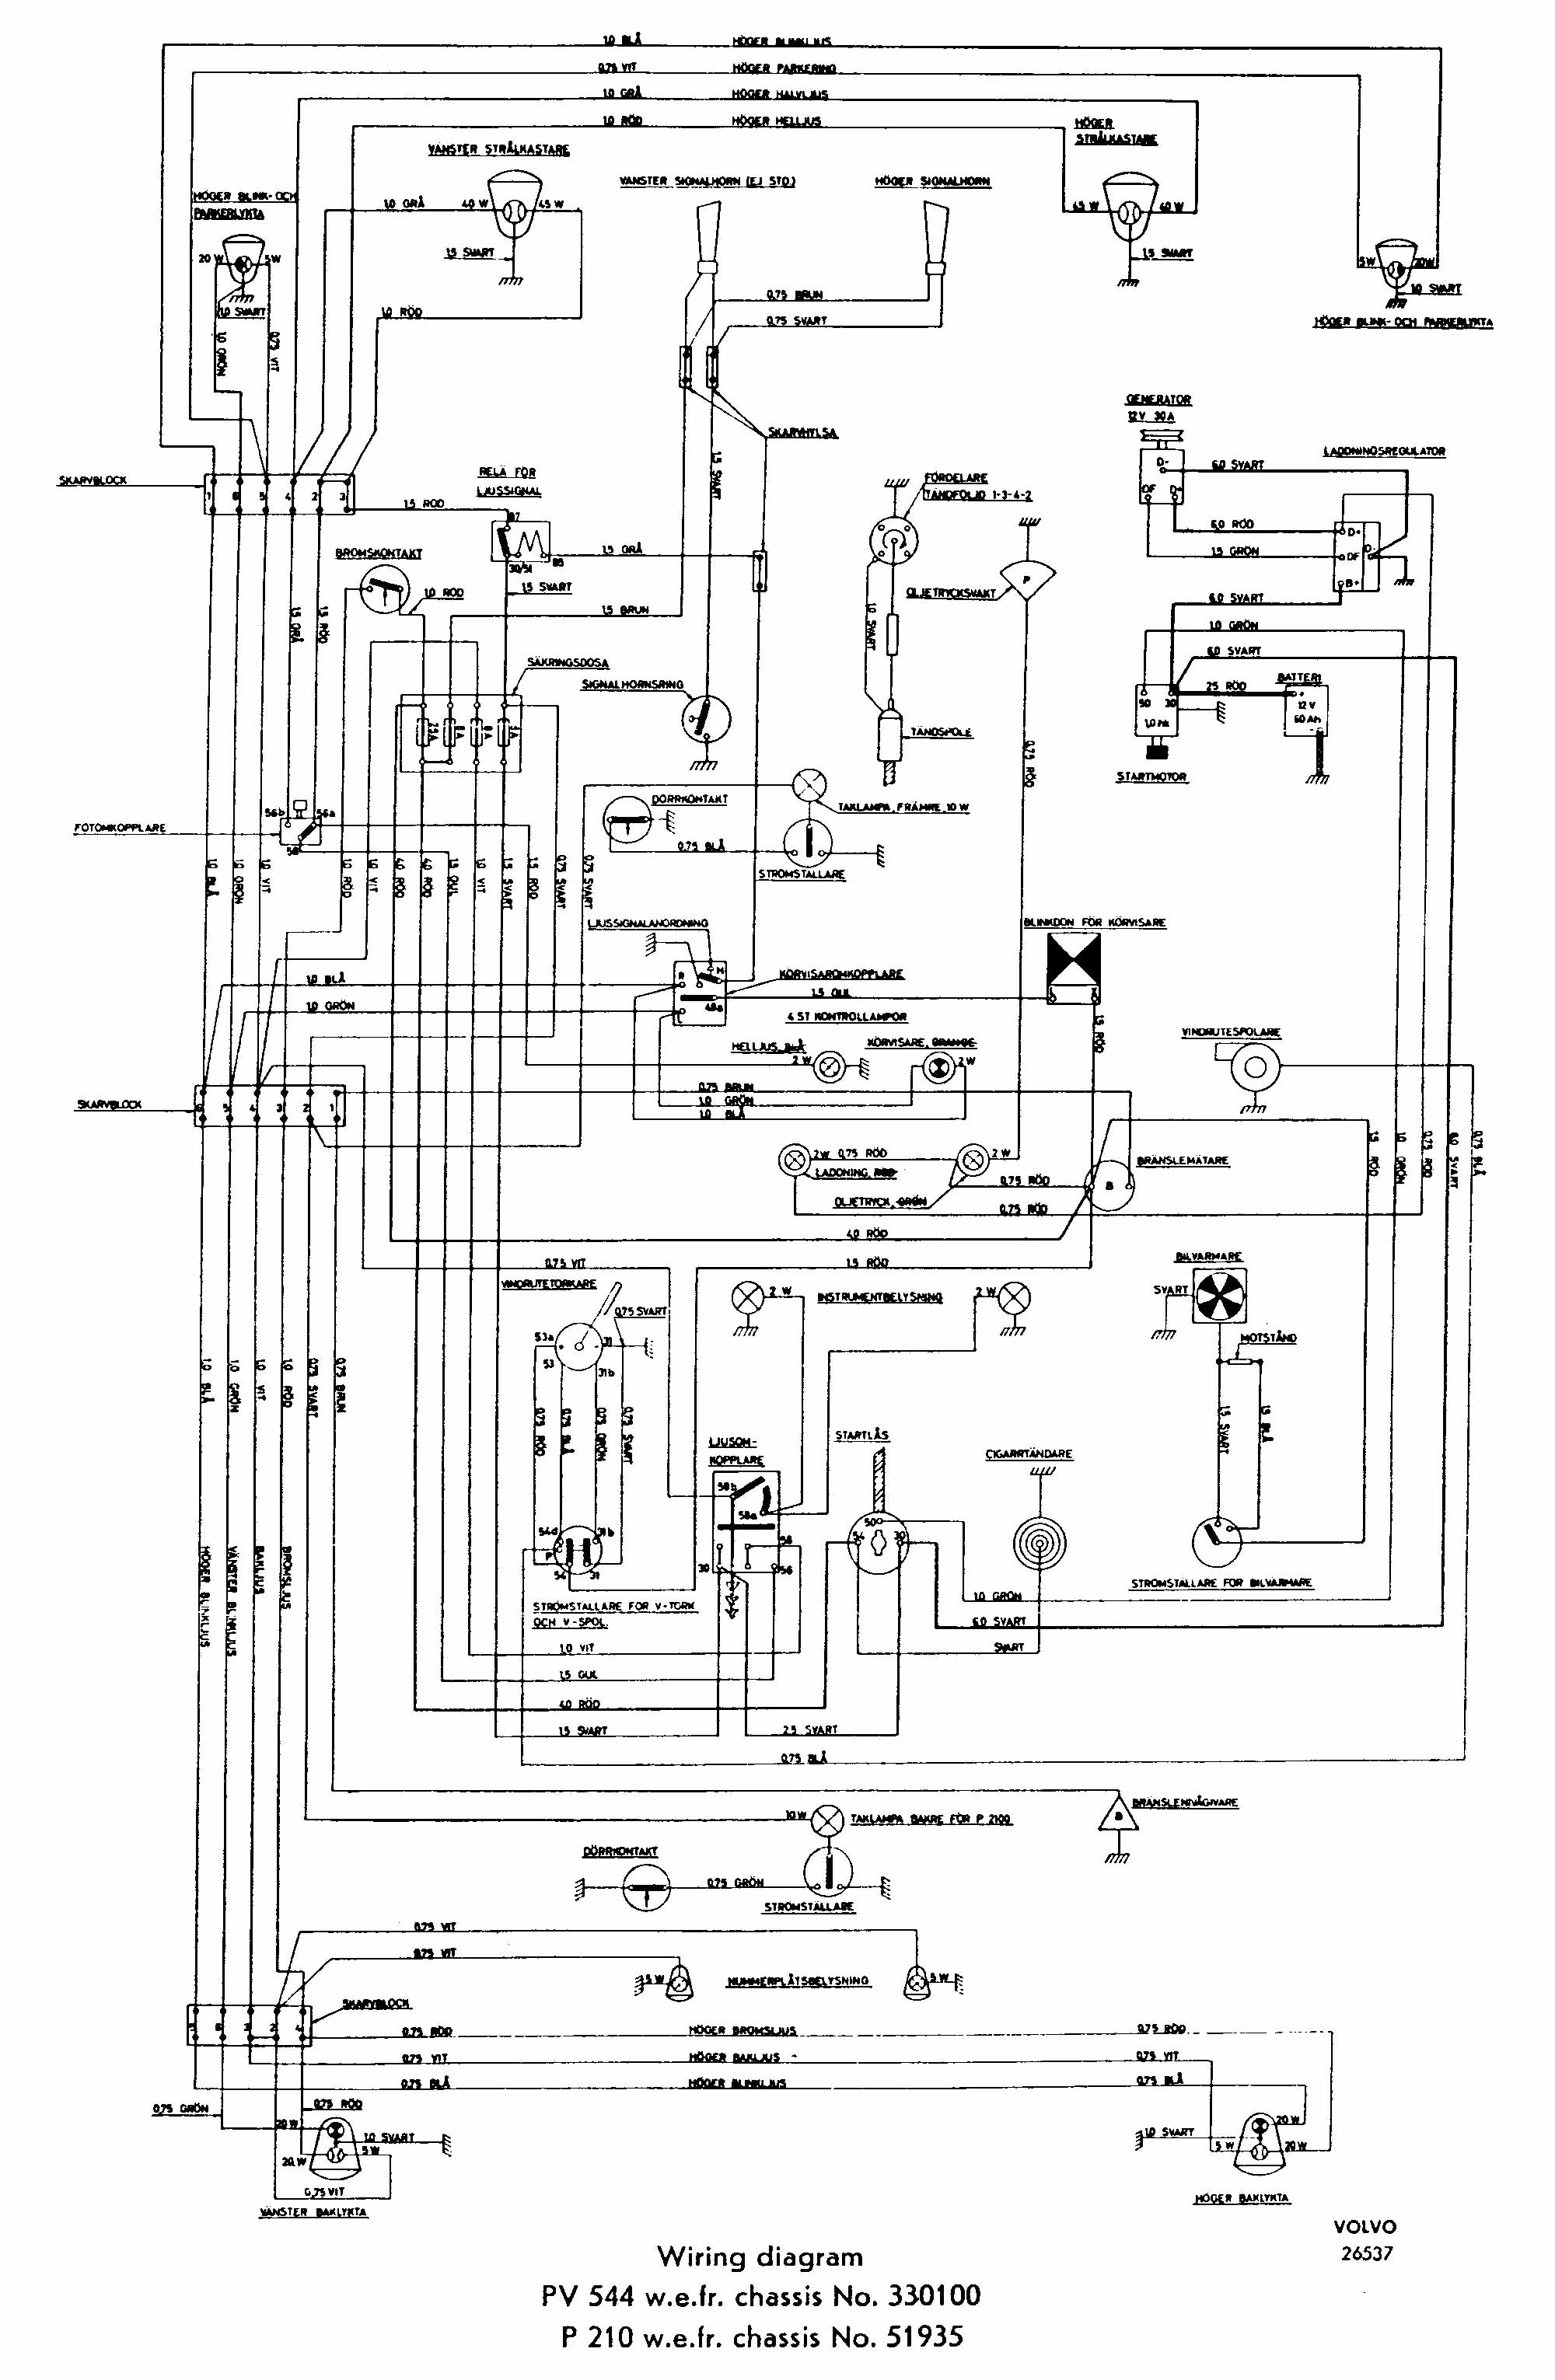 volvo b7 wiring diagram volvo wiring diagrams